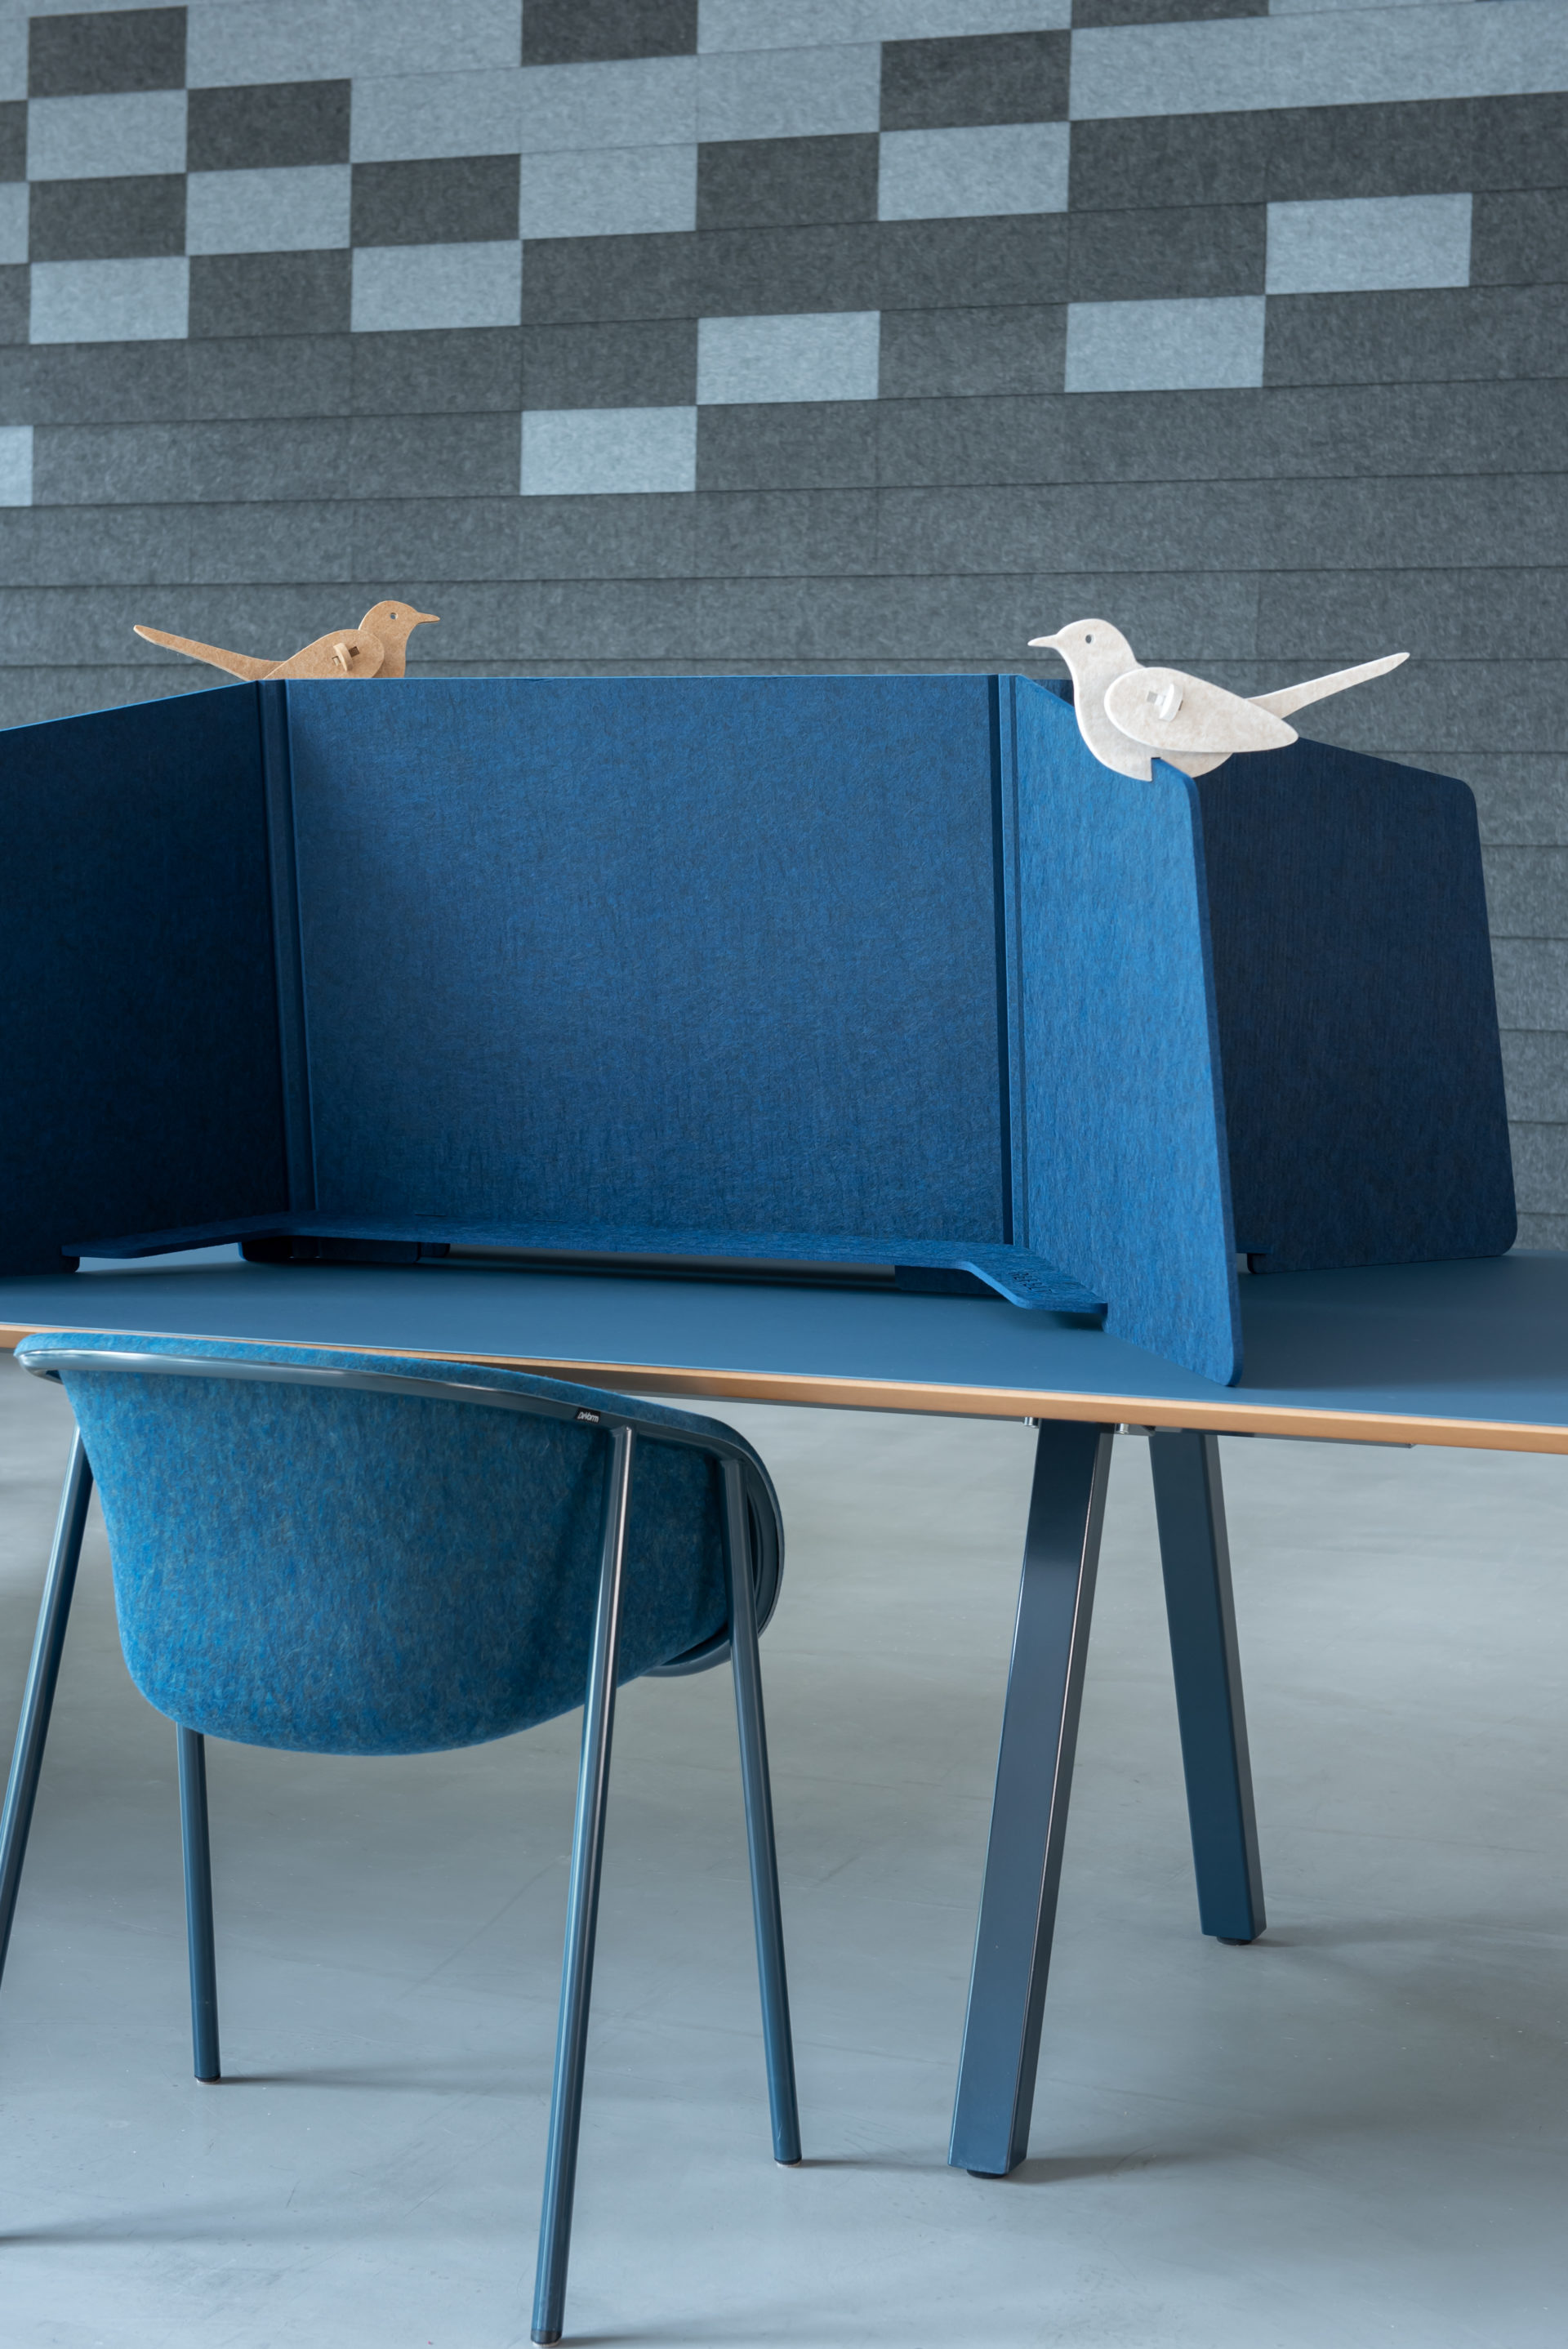 ReFelt PET Felt Workplace Divider 1.5m blue 1